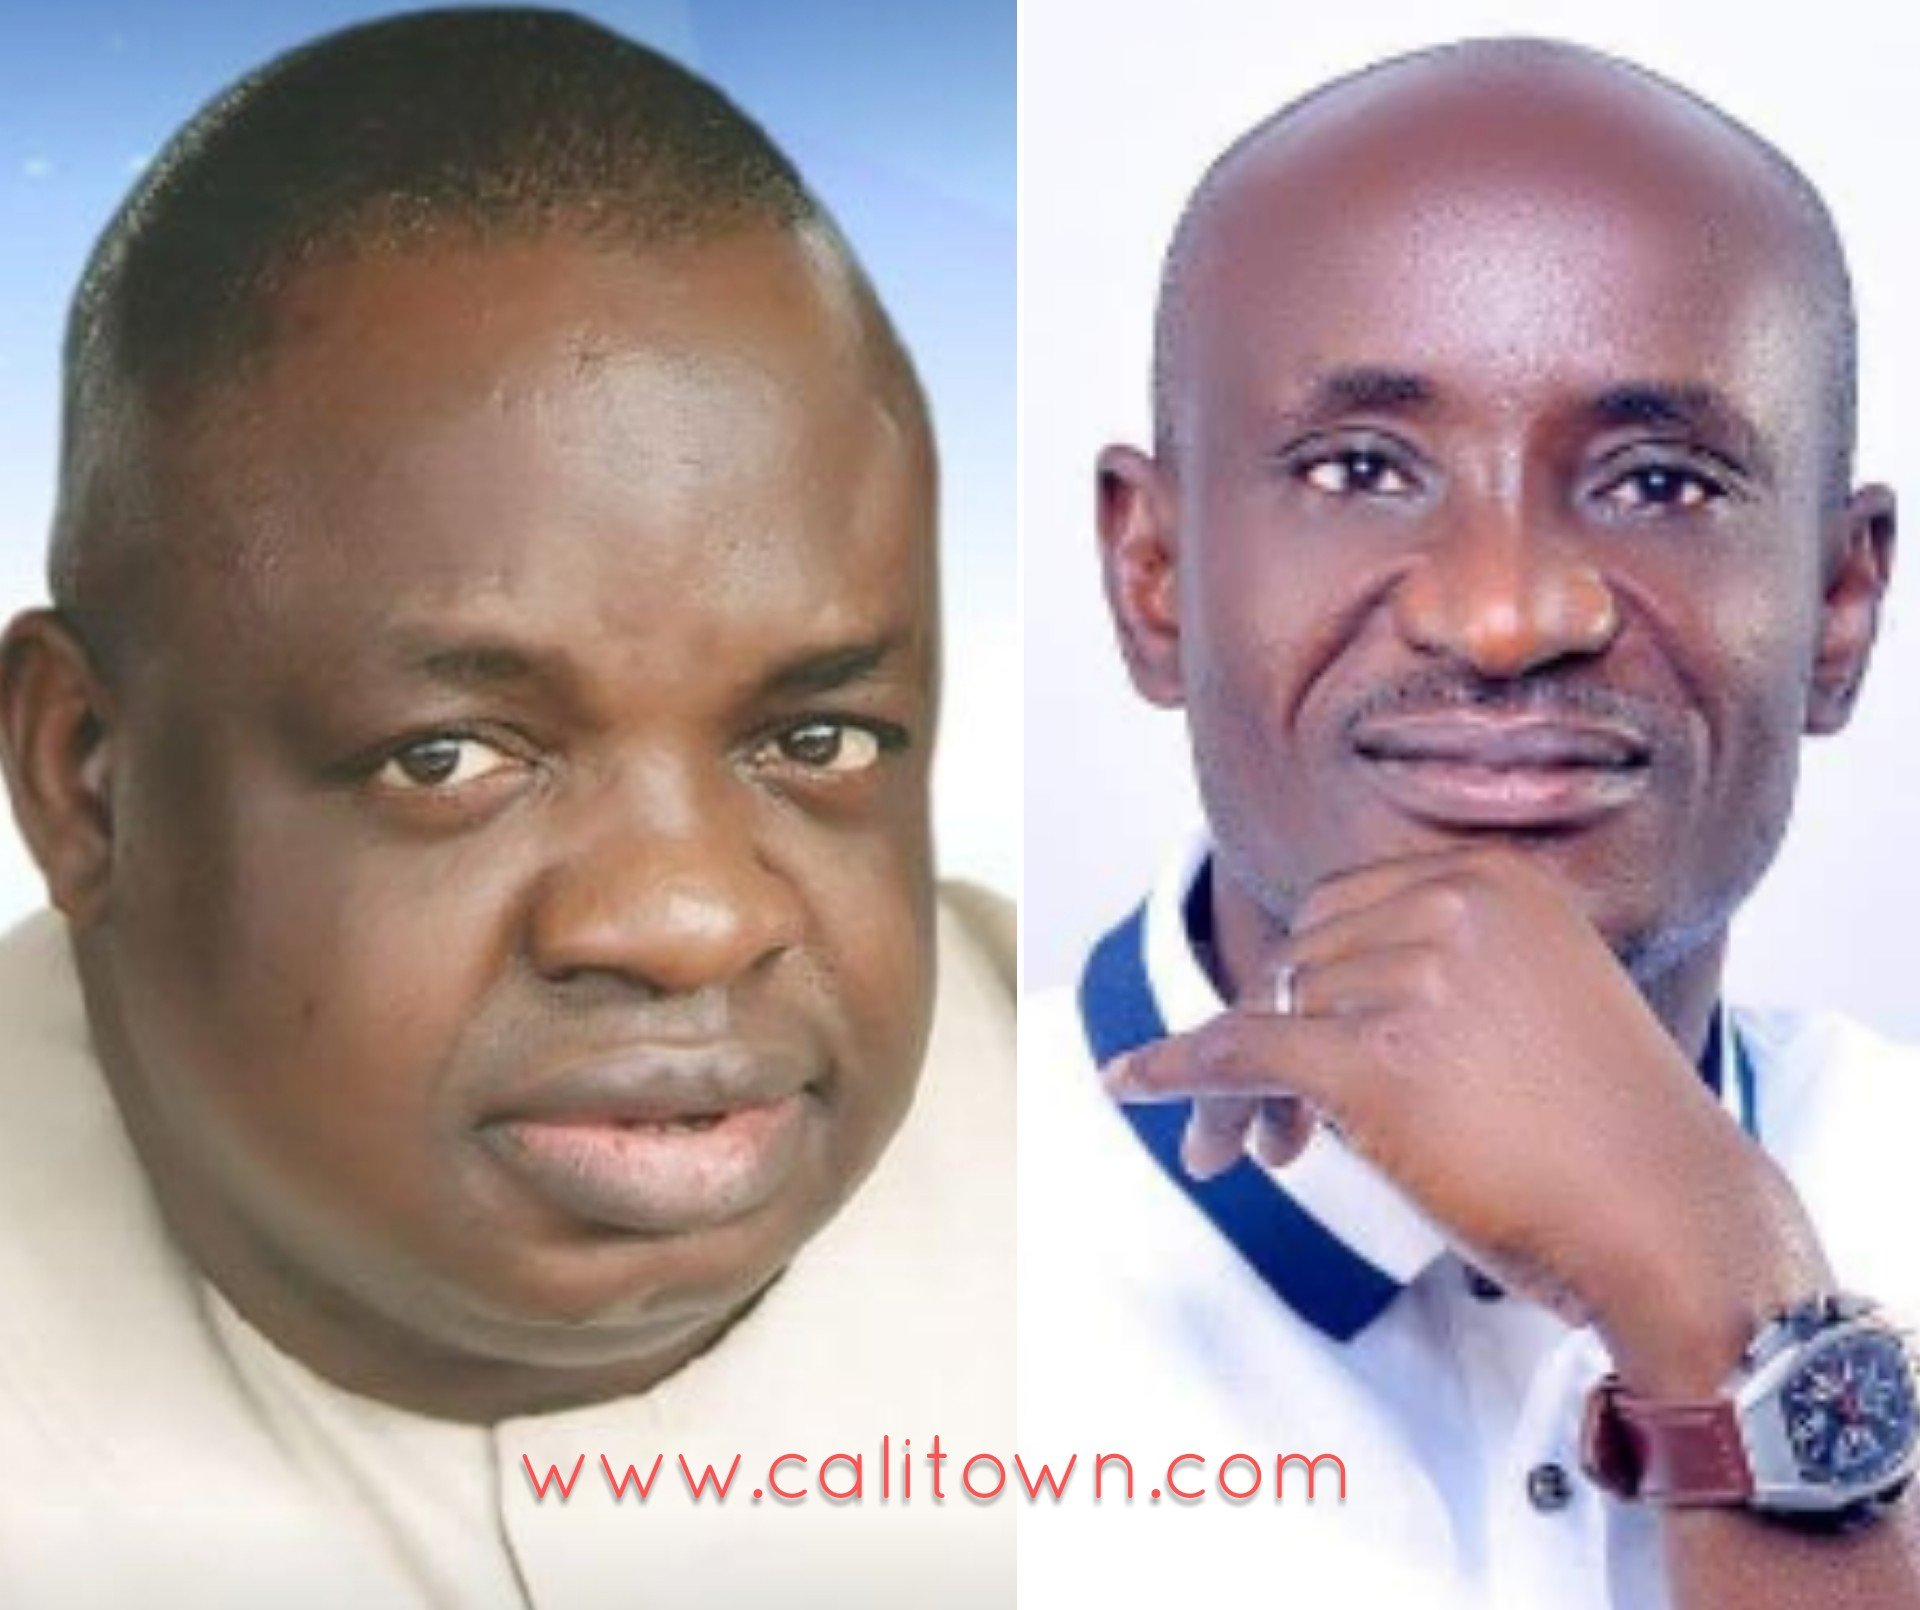 Egbona Scales Lebo Hurdle In House Of Reps Rerun Elections